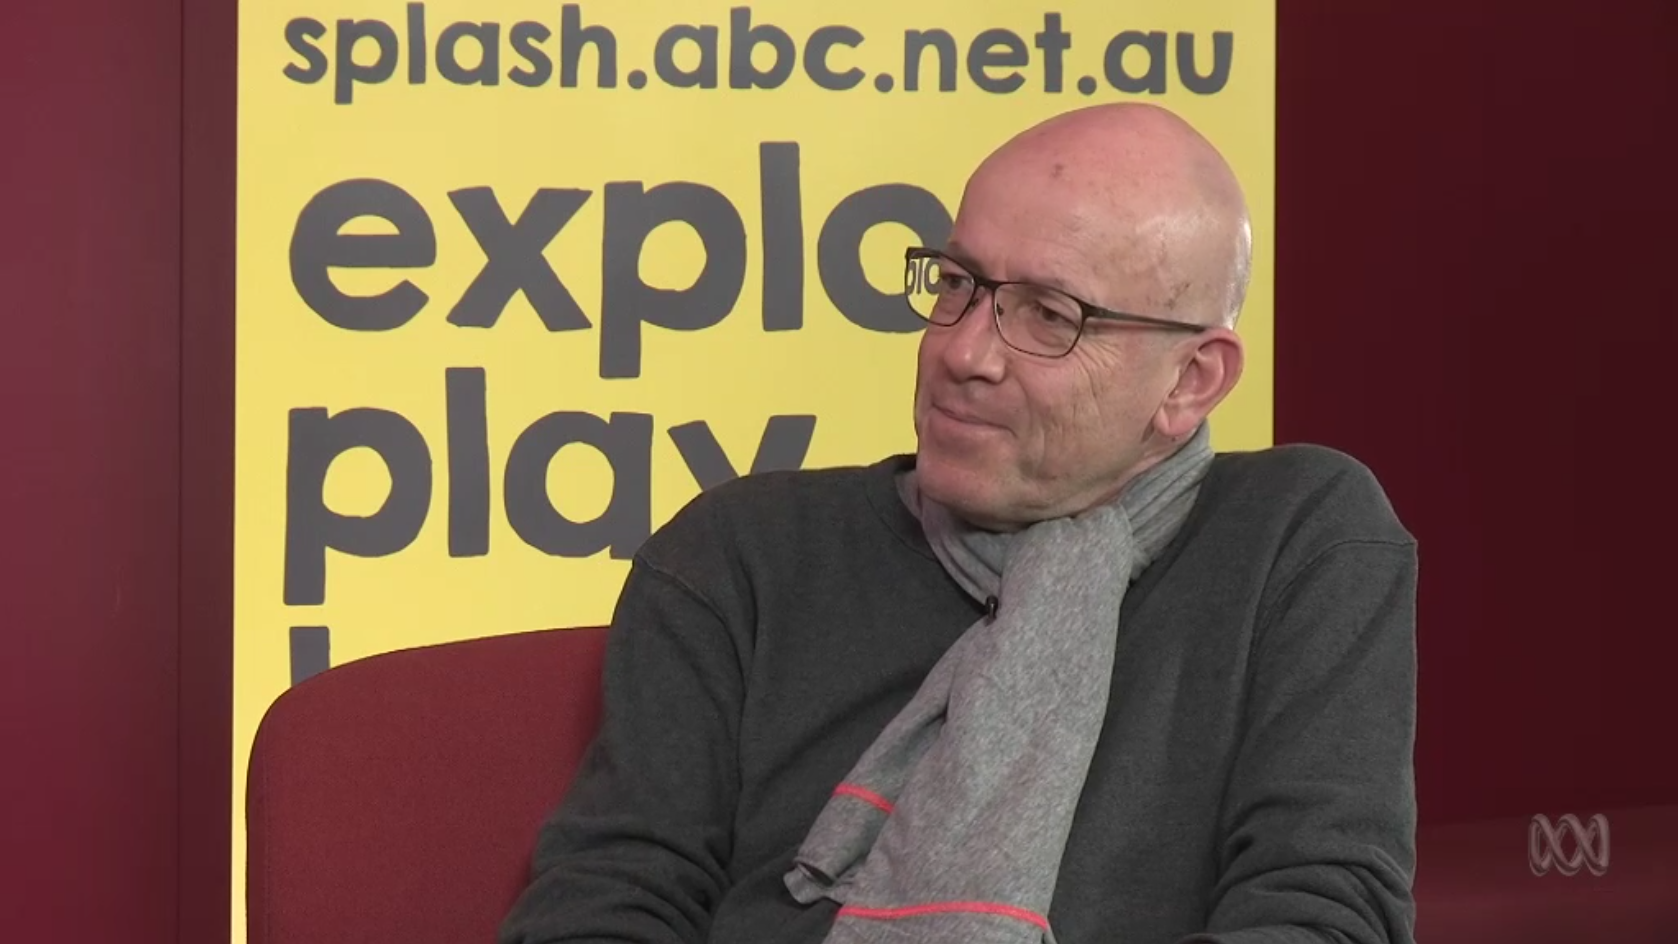 Melbourne Livestream delivered a series of Meet the Author events for ABC Splash from the State Library of Victoria, this episode was with Morris Glietzman